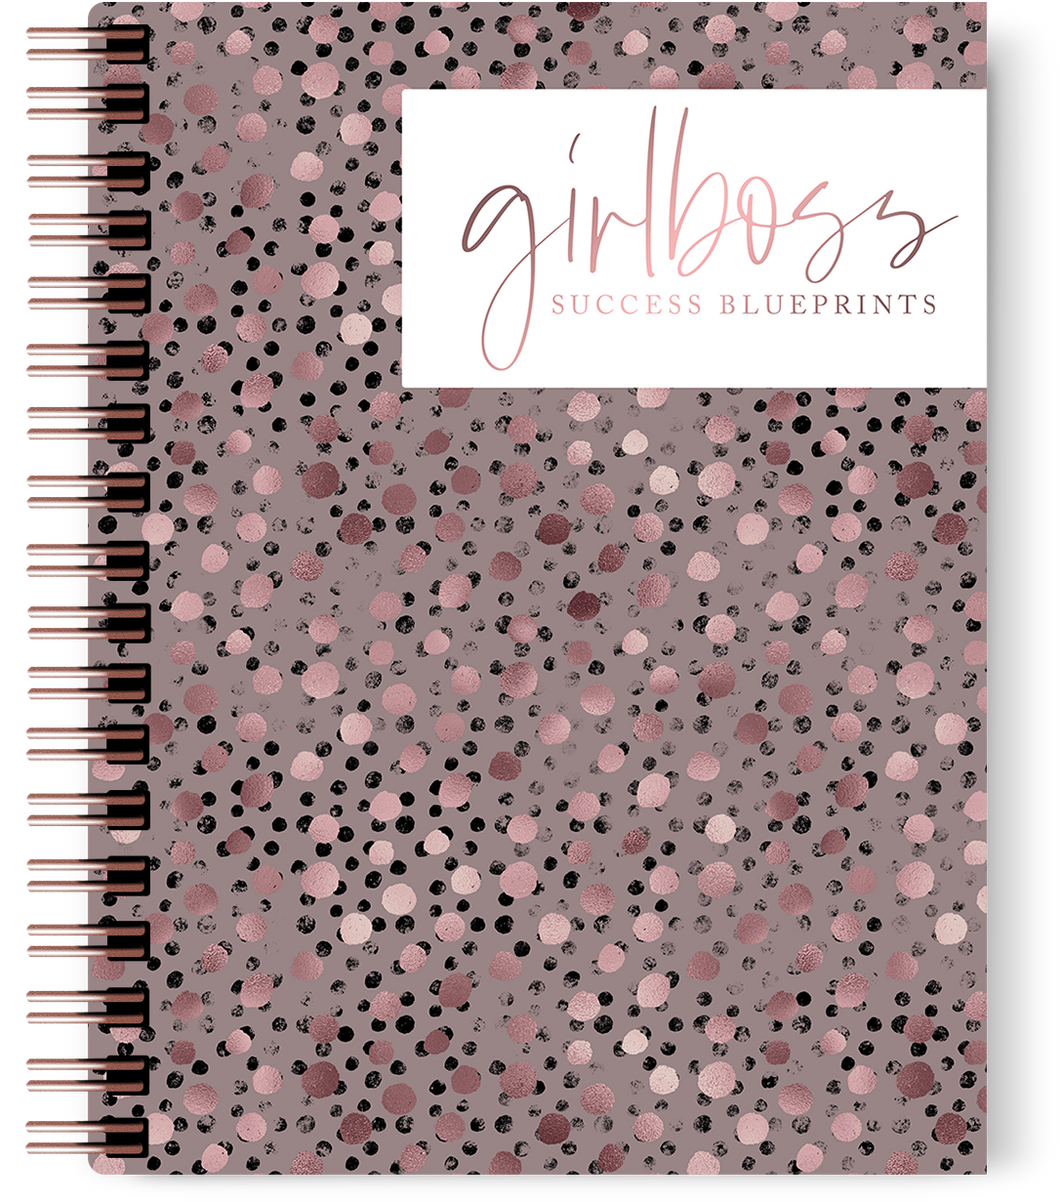 GirlBoss Success Blueprints Business Planner Guide & Workbook (Digital)